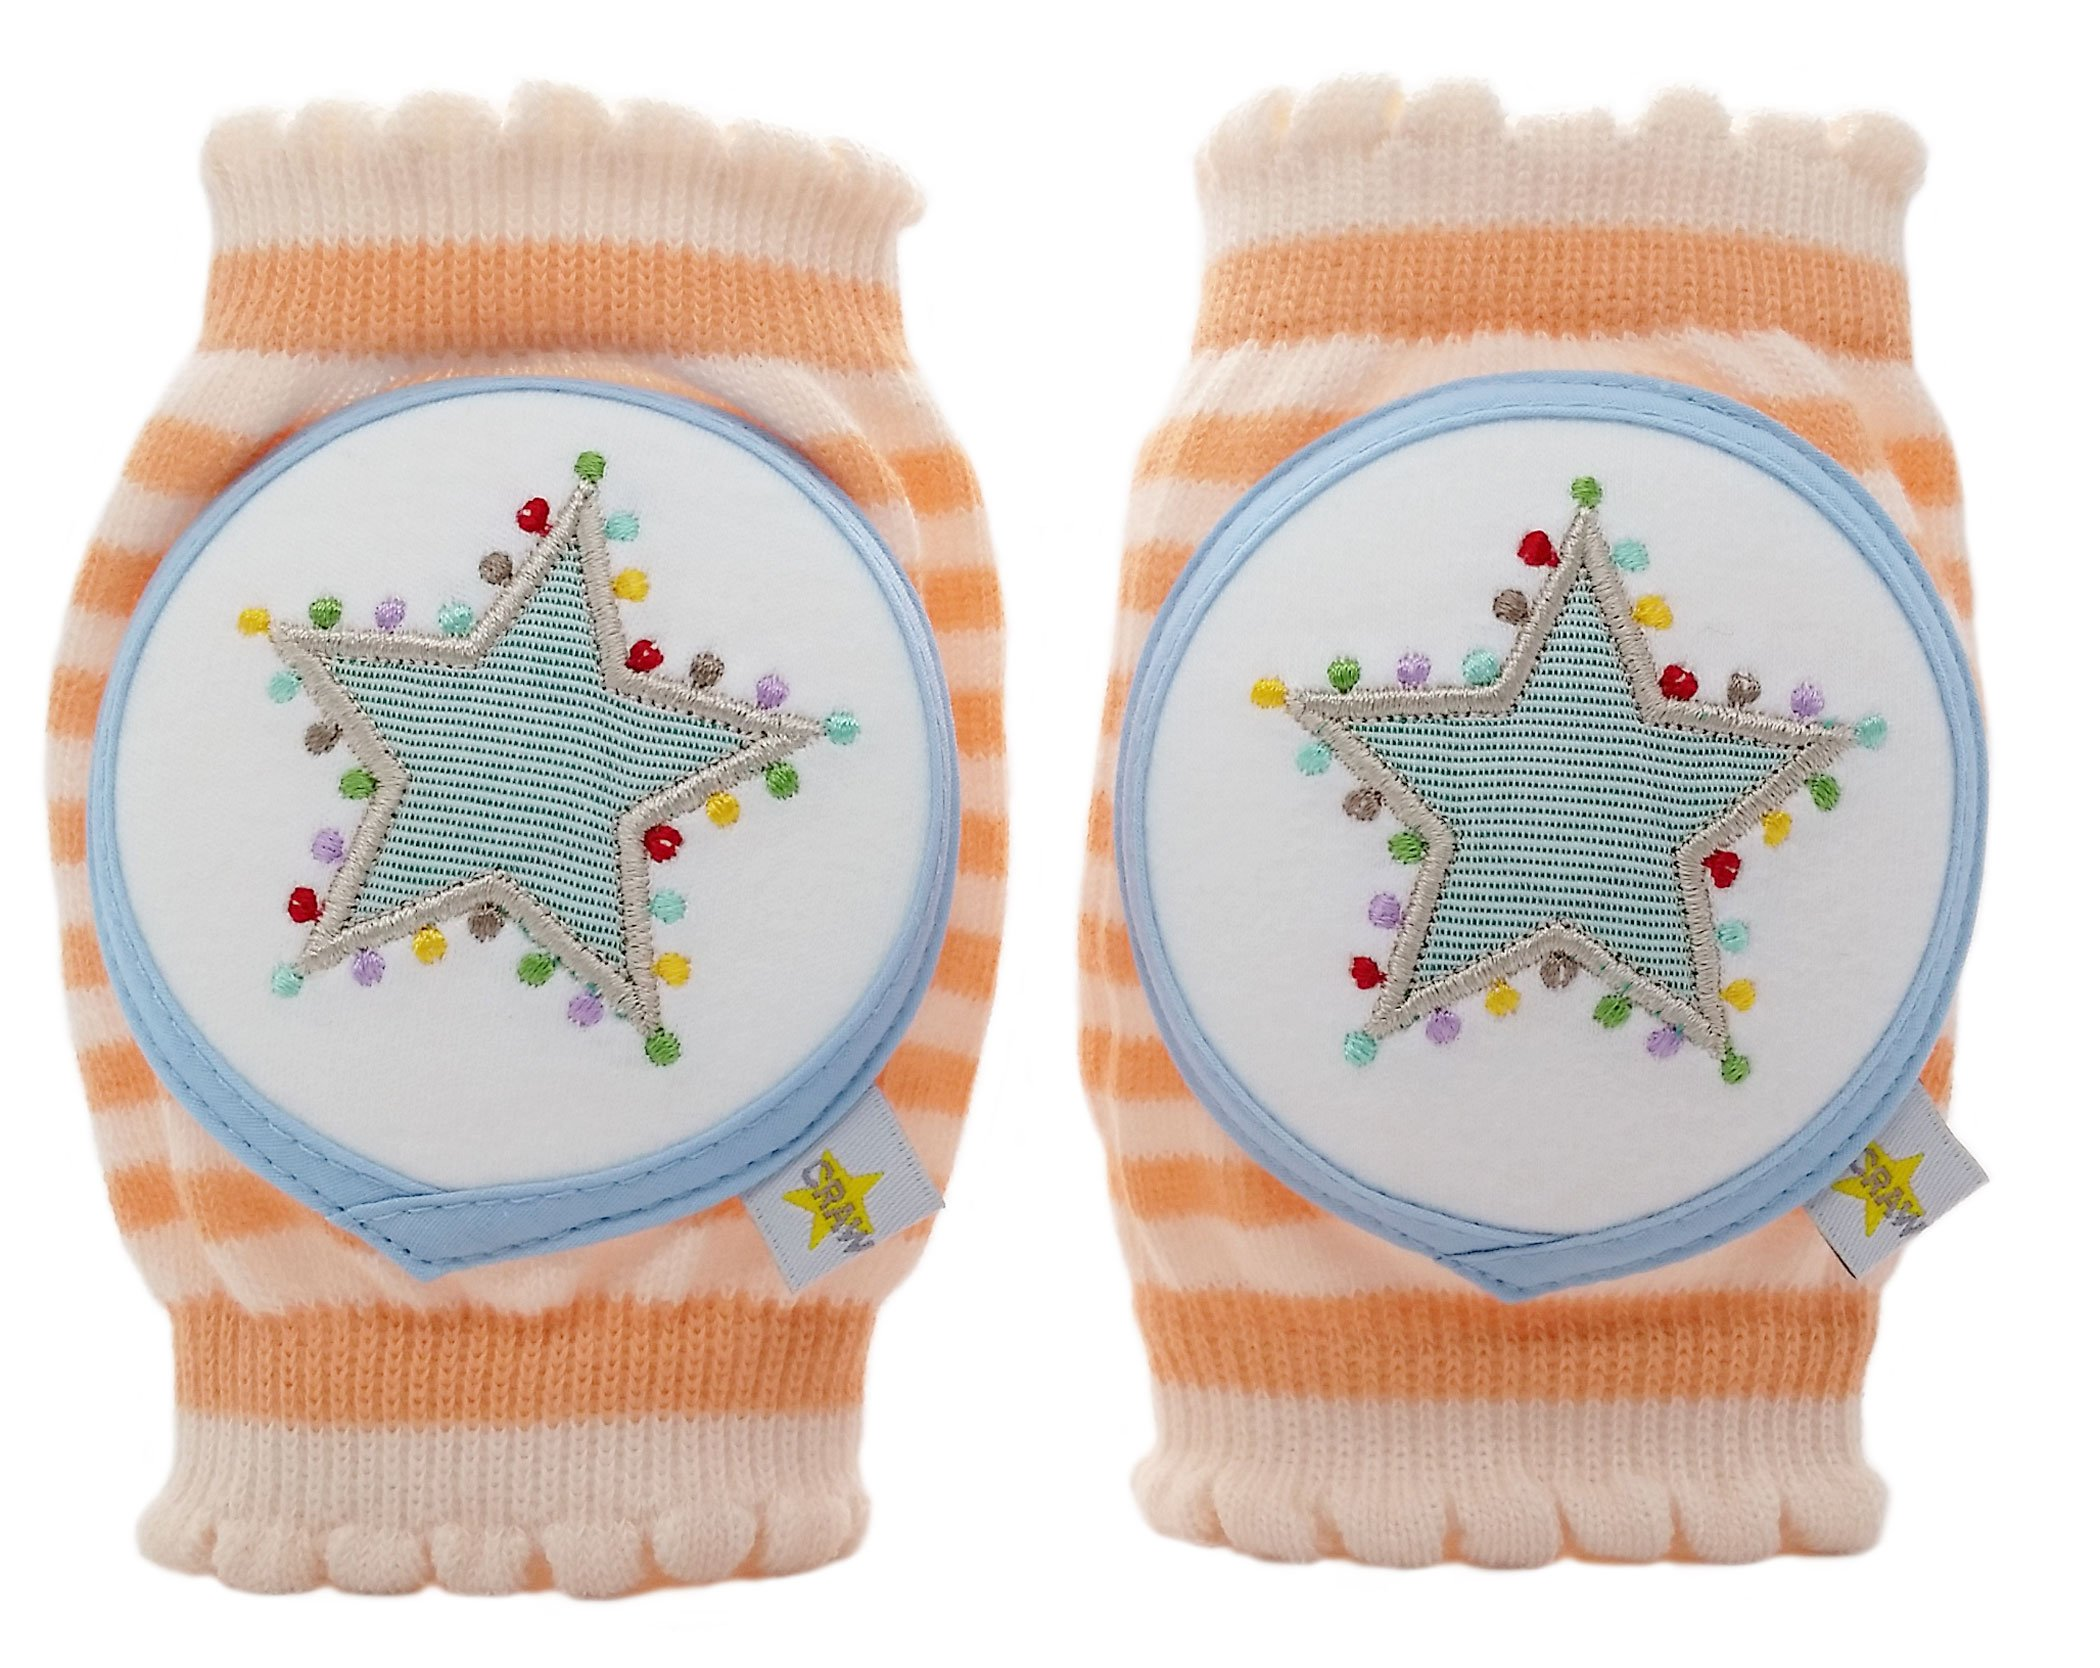 Crawlings Unisex Star Knee Pads One Size Tangerine by Crawlings